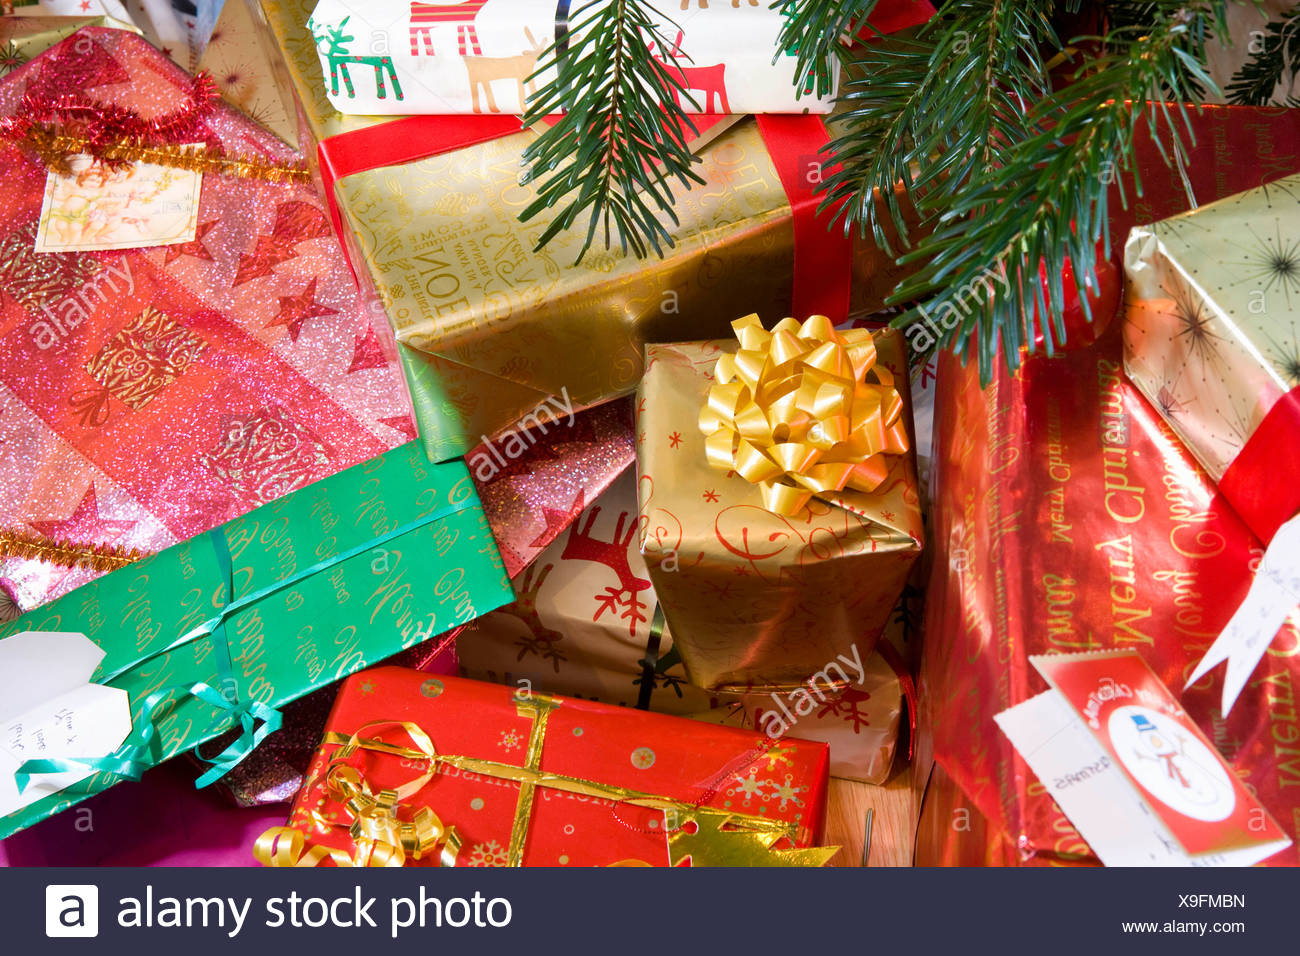 Christmas presents under decorated tree - Stock Image